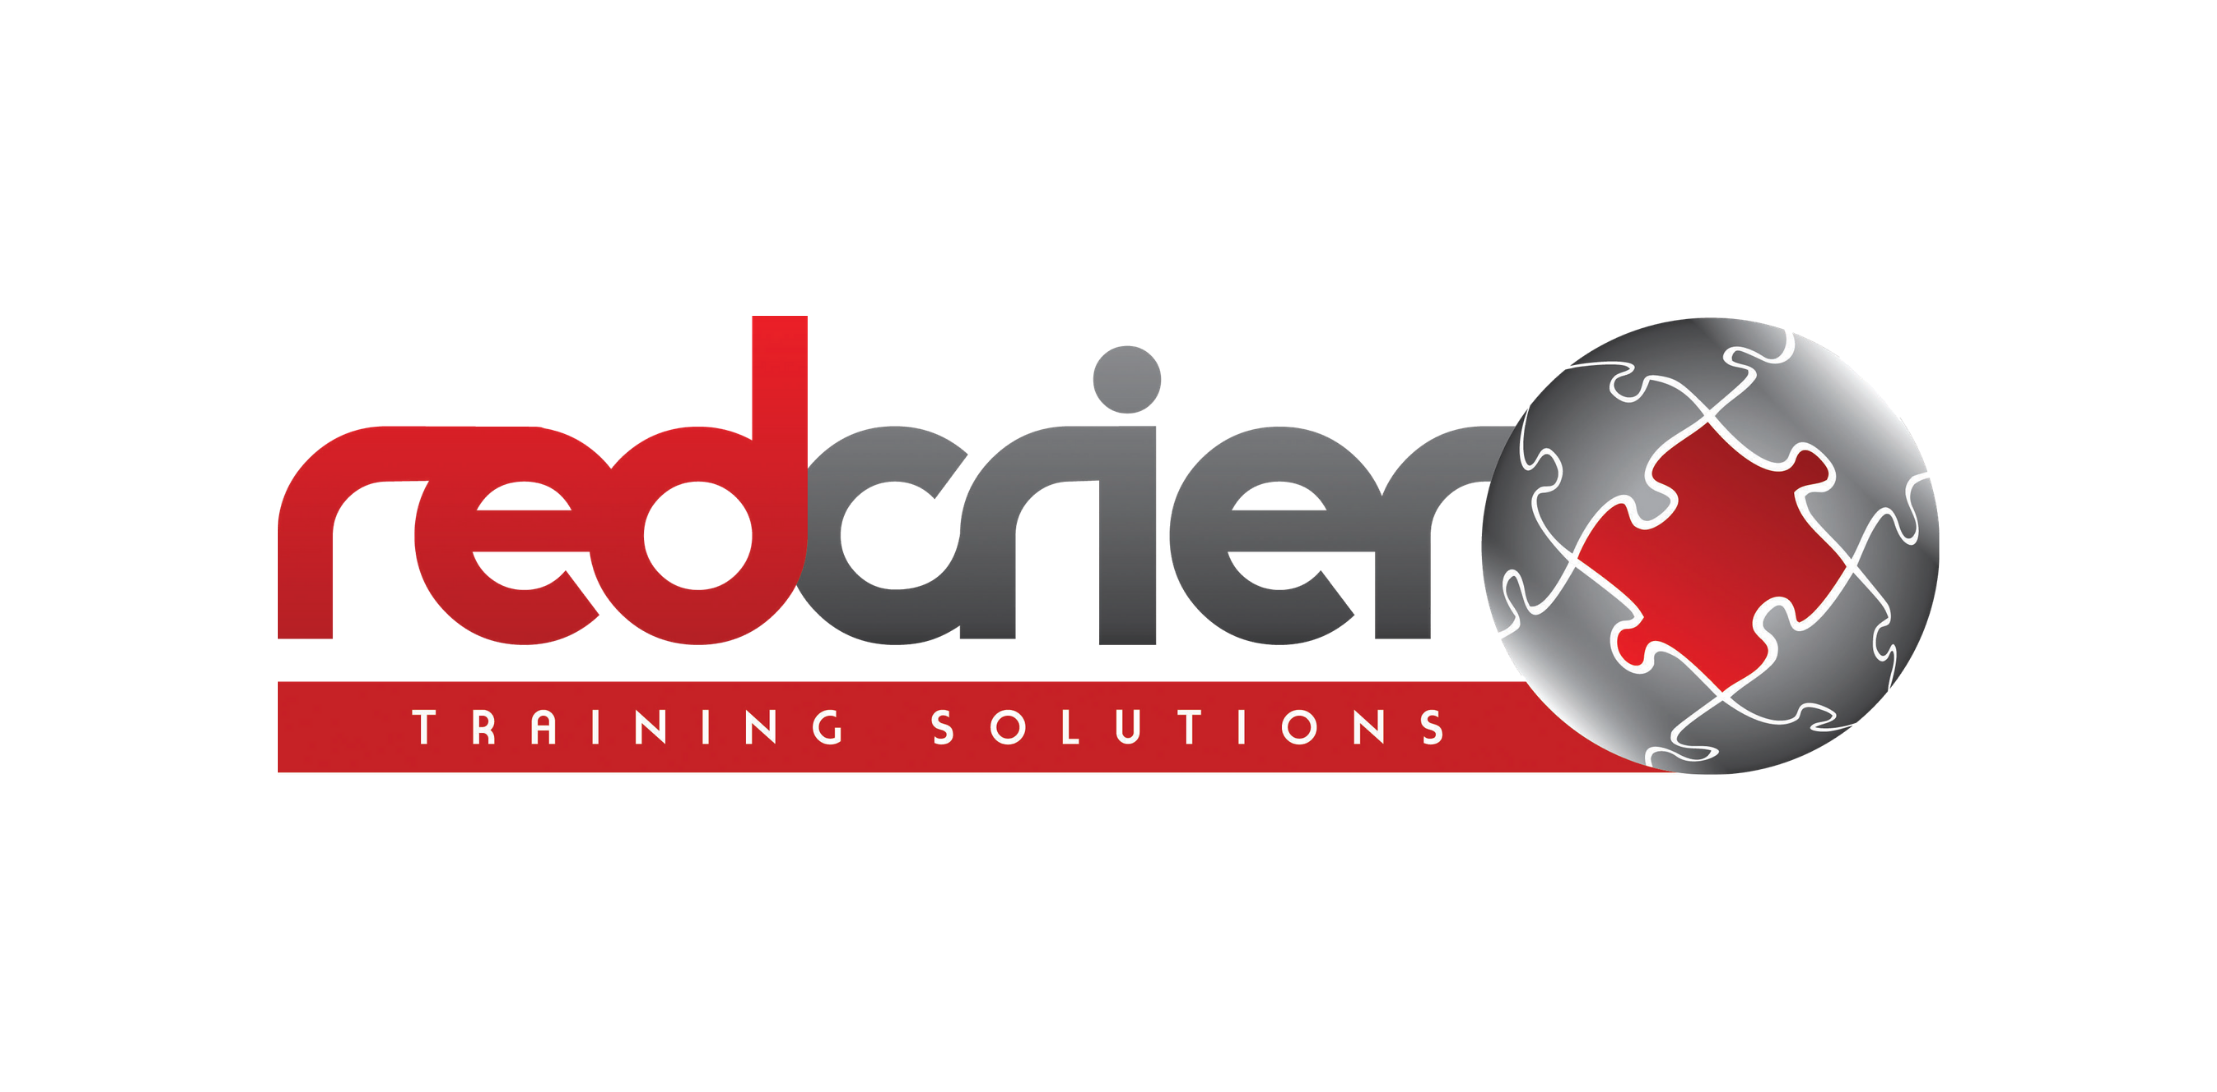 ATTACHMENT DETAILS Redcrier_Logo_Dechoker_Training_Partner